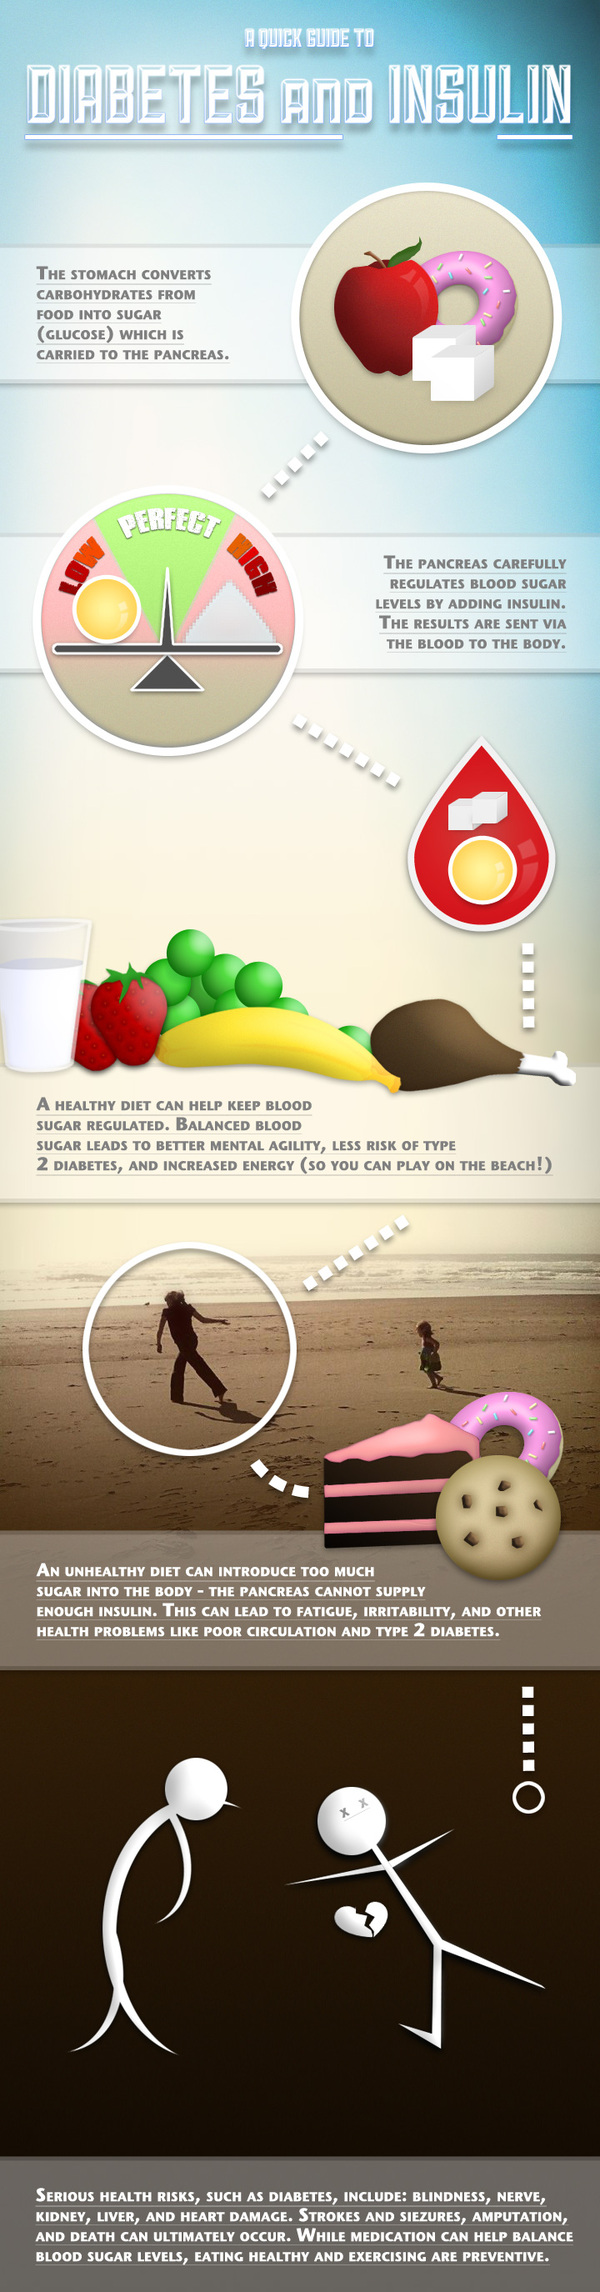 Facts about Diabetes and Insulin